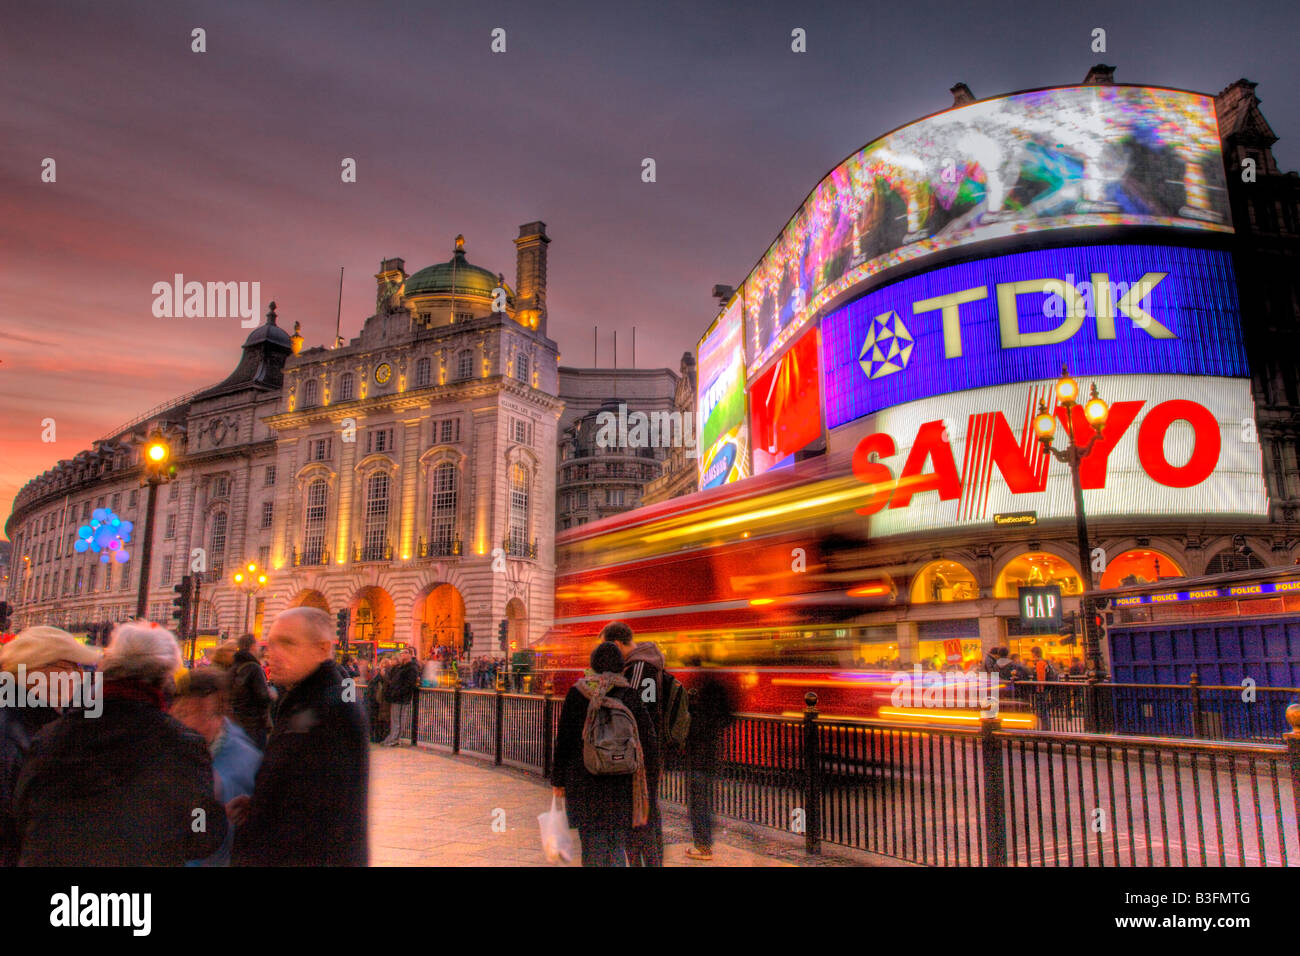 HDR photo of Picadilly circus at sunset - Stock Image